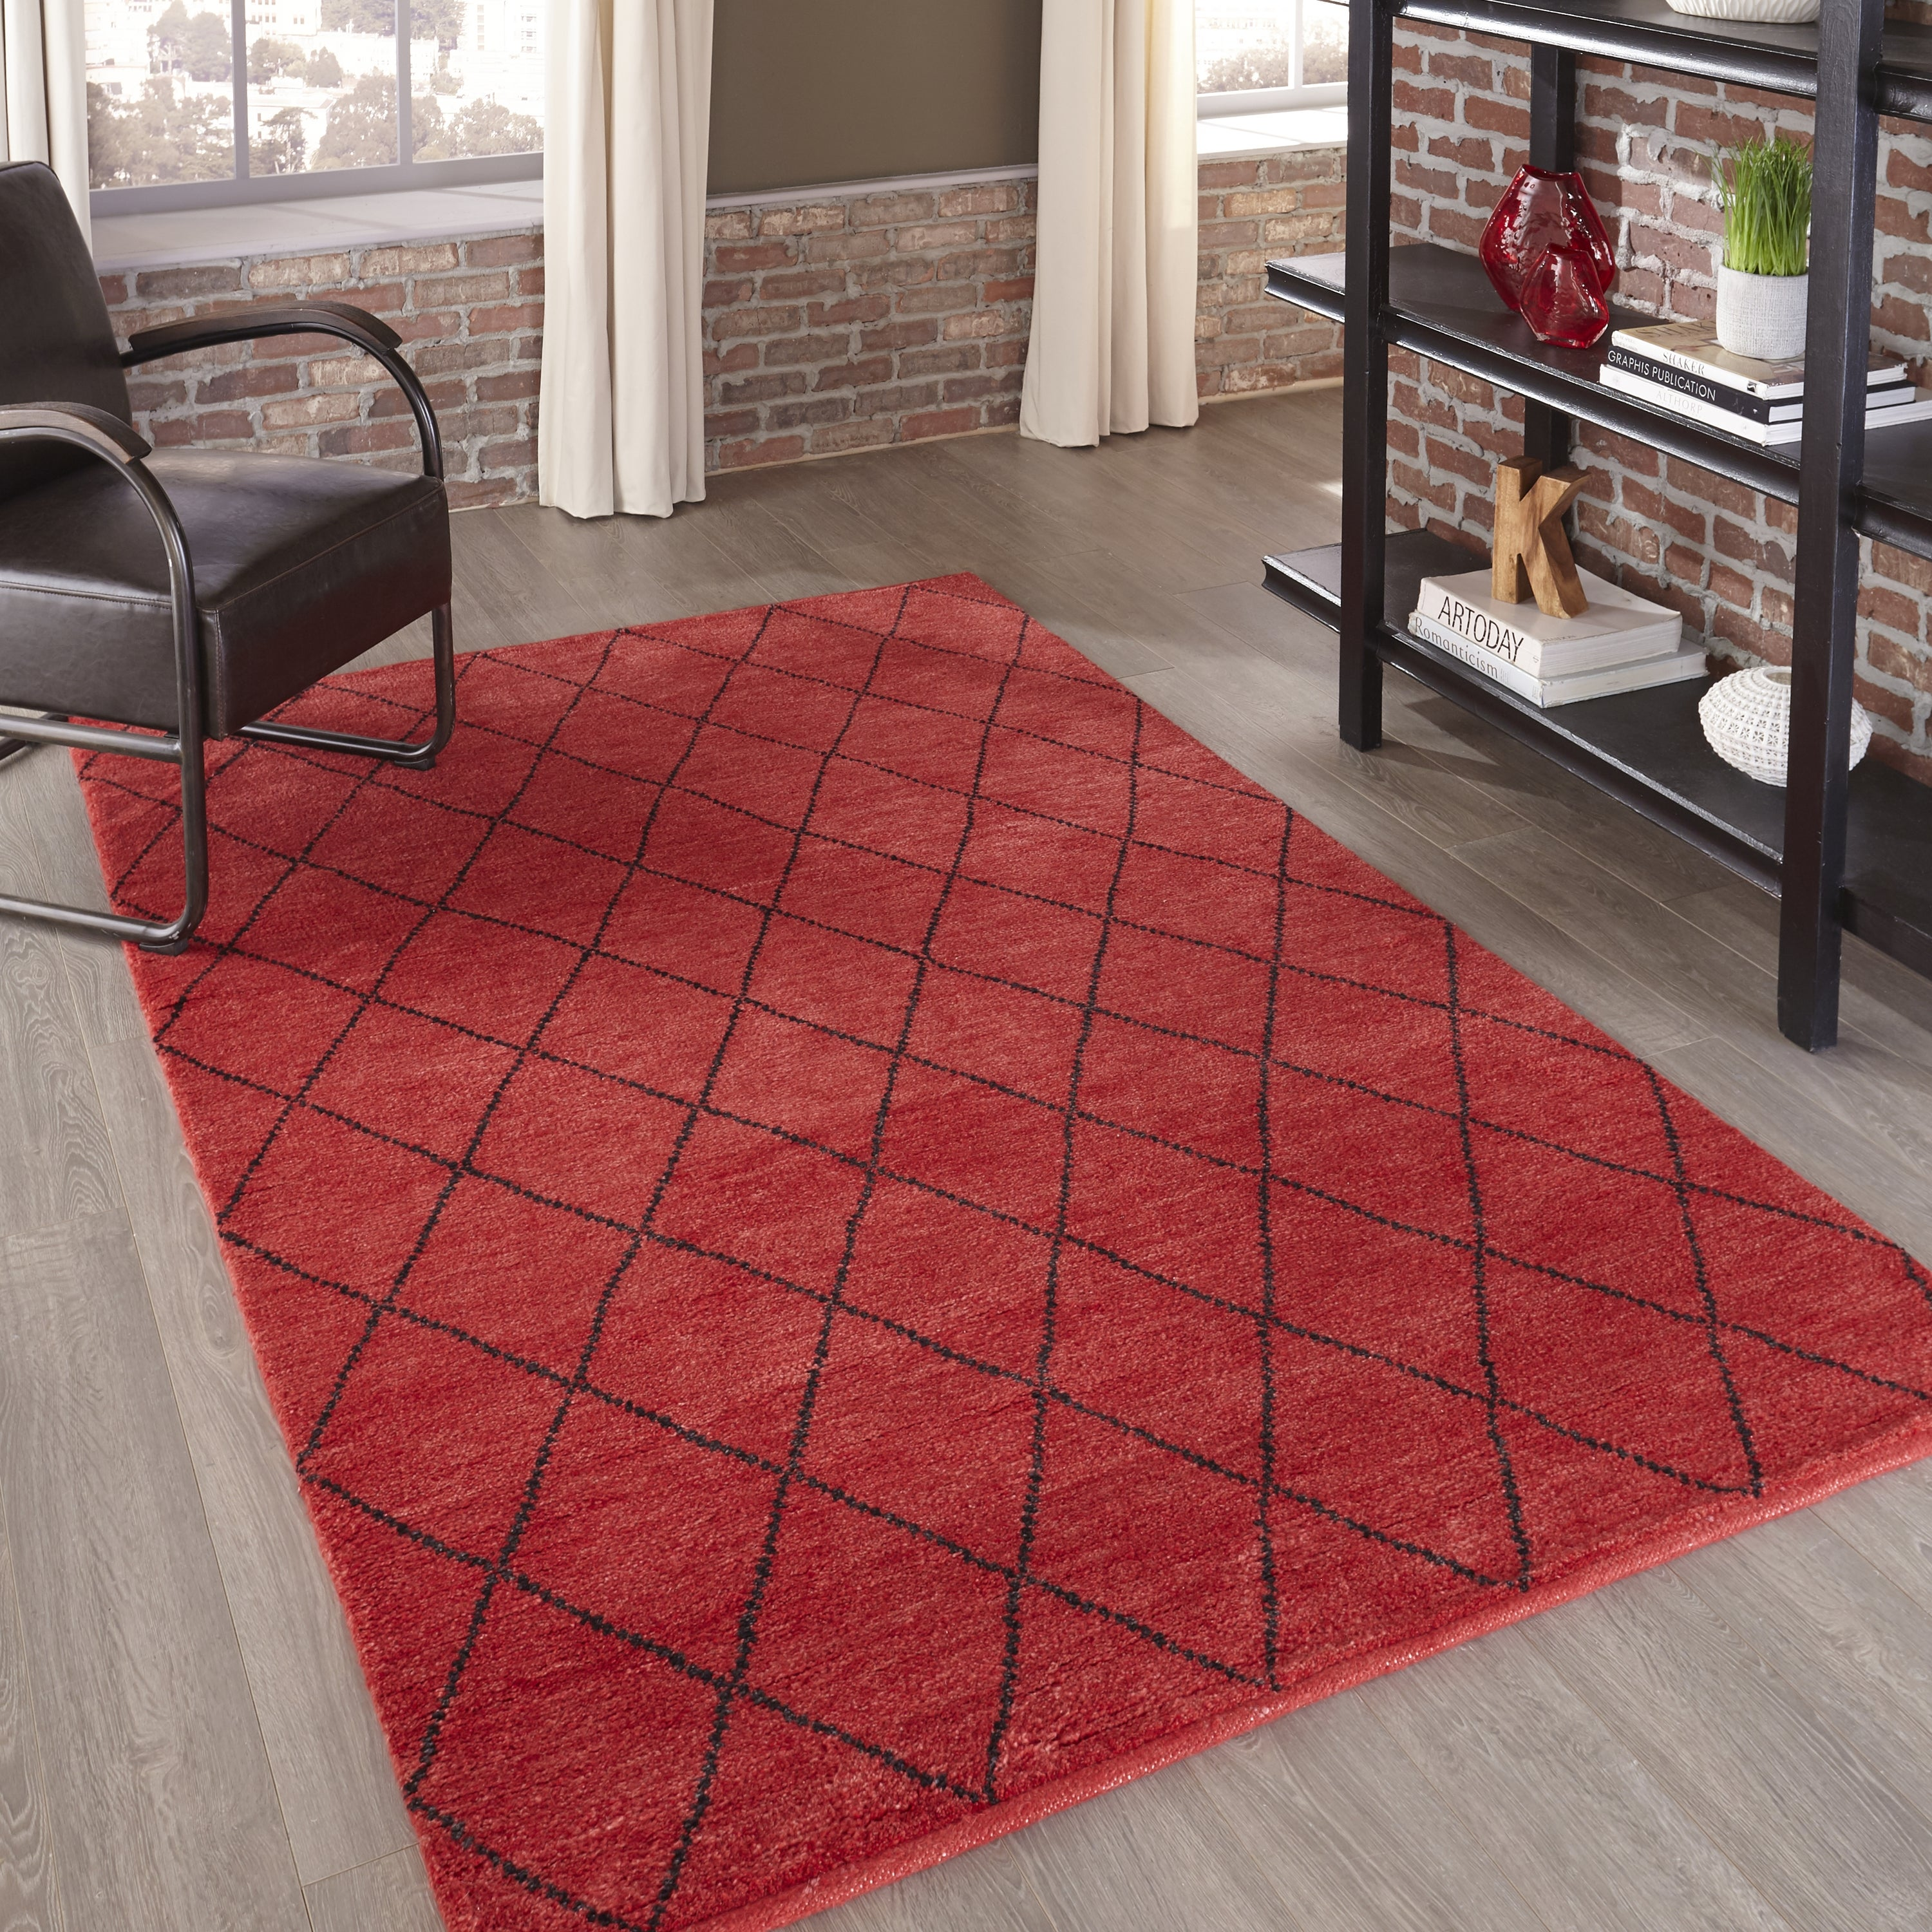 Rectangle Red Geometric Hand Knotted Wool Transitional recommended for Kitchen, Bedroom, Bathroom, Dining Room, Office, Hallway, Living Room